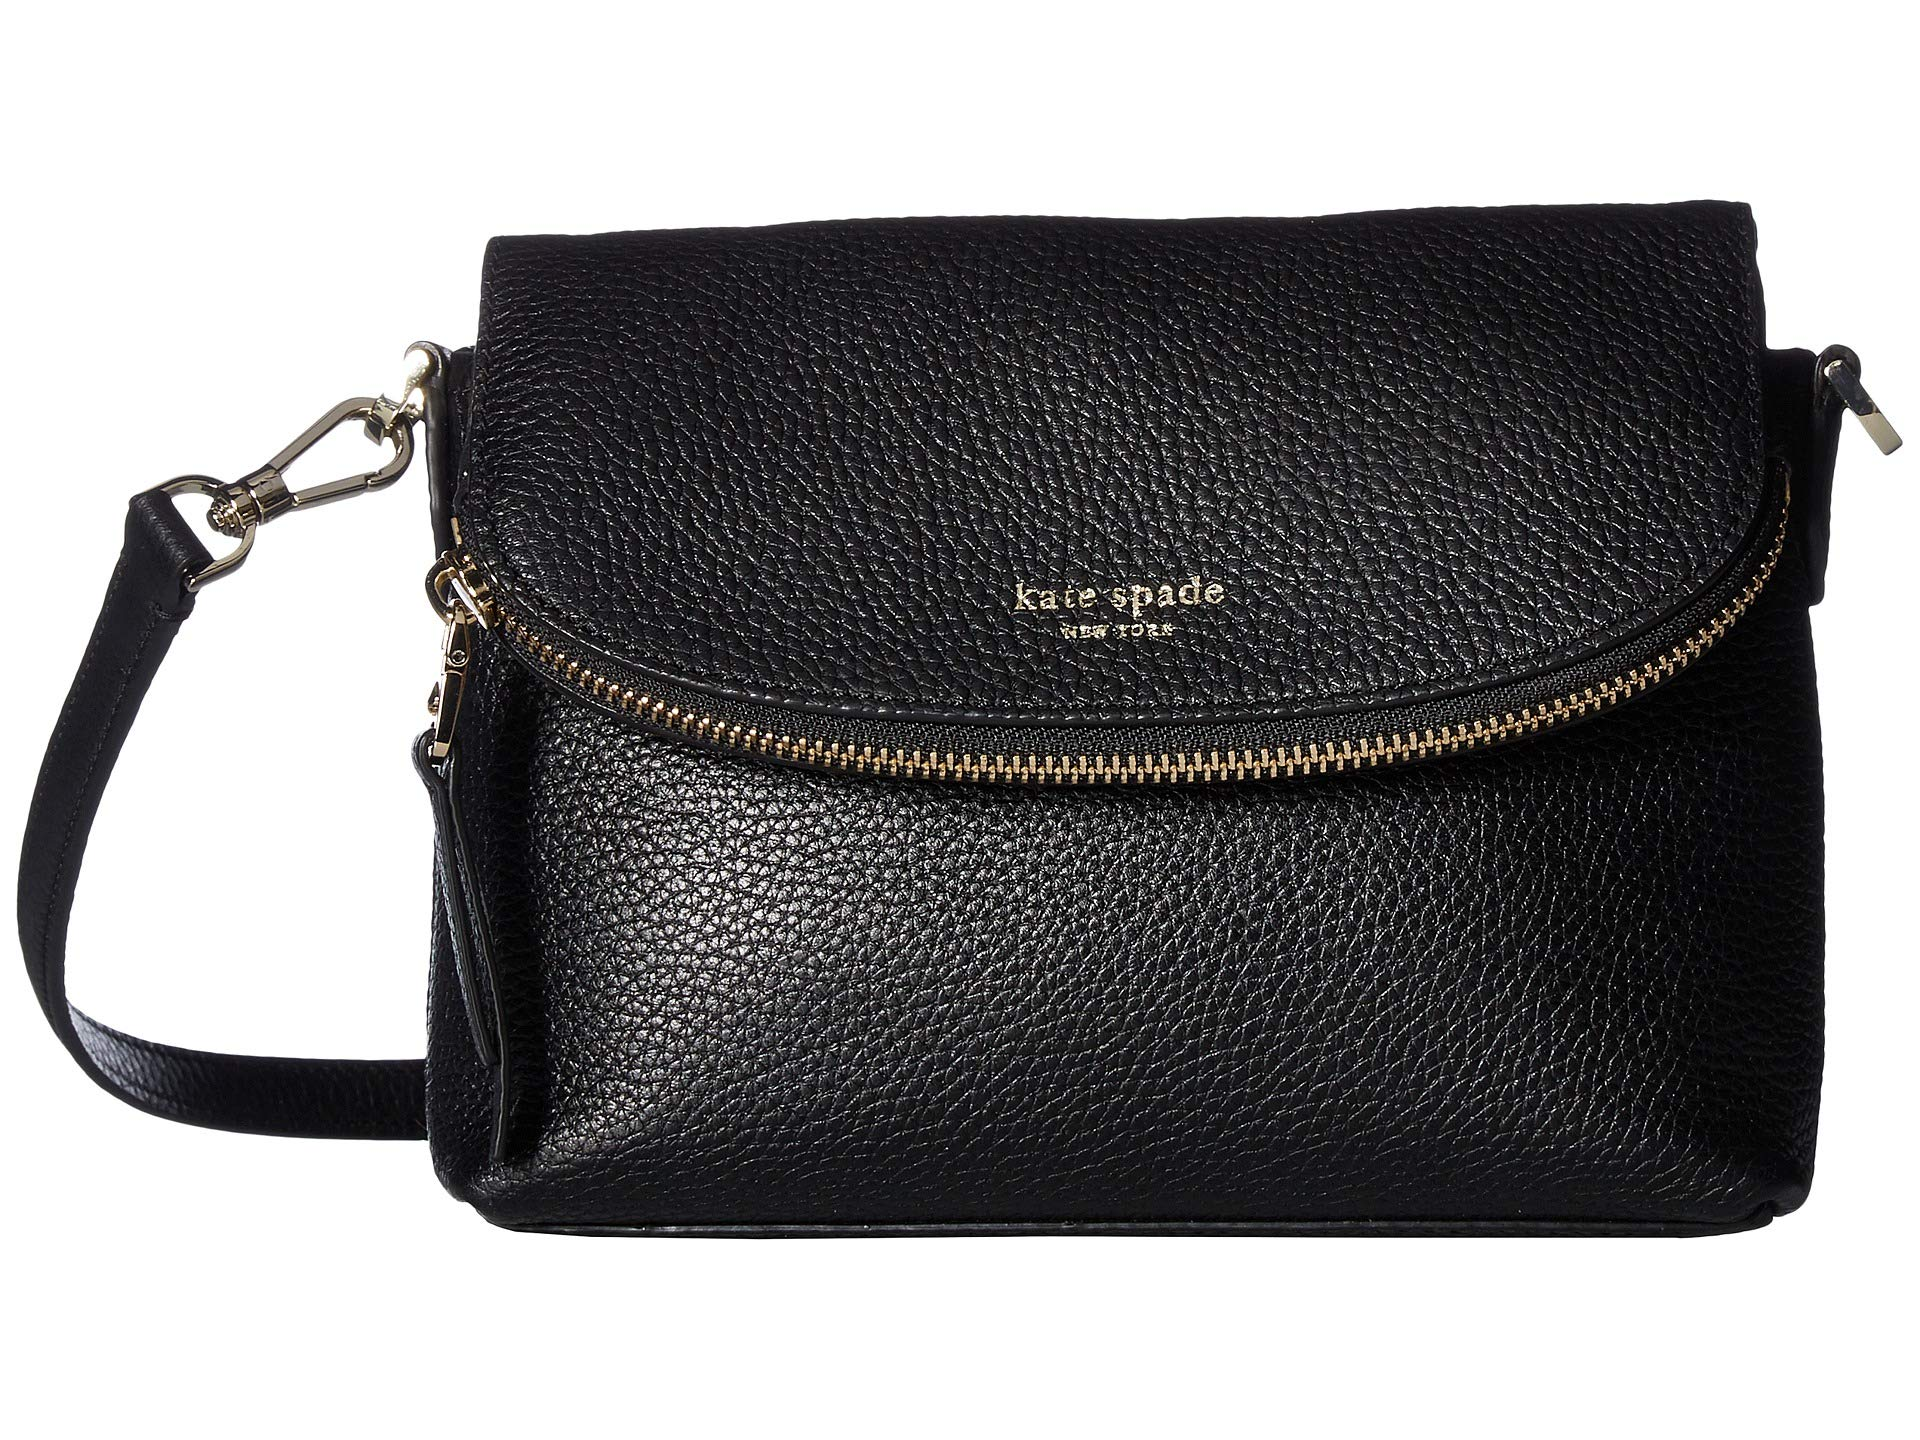 06588b632bf9 Kate Spade New York Polly Small Flap Crossbody at Luxury.Zappos.com